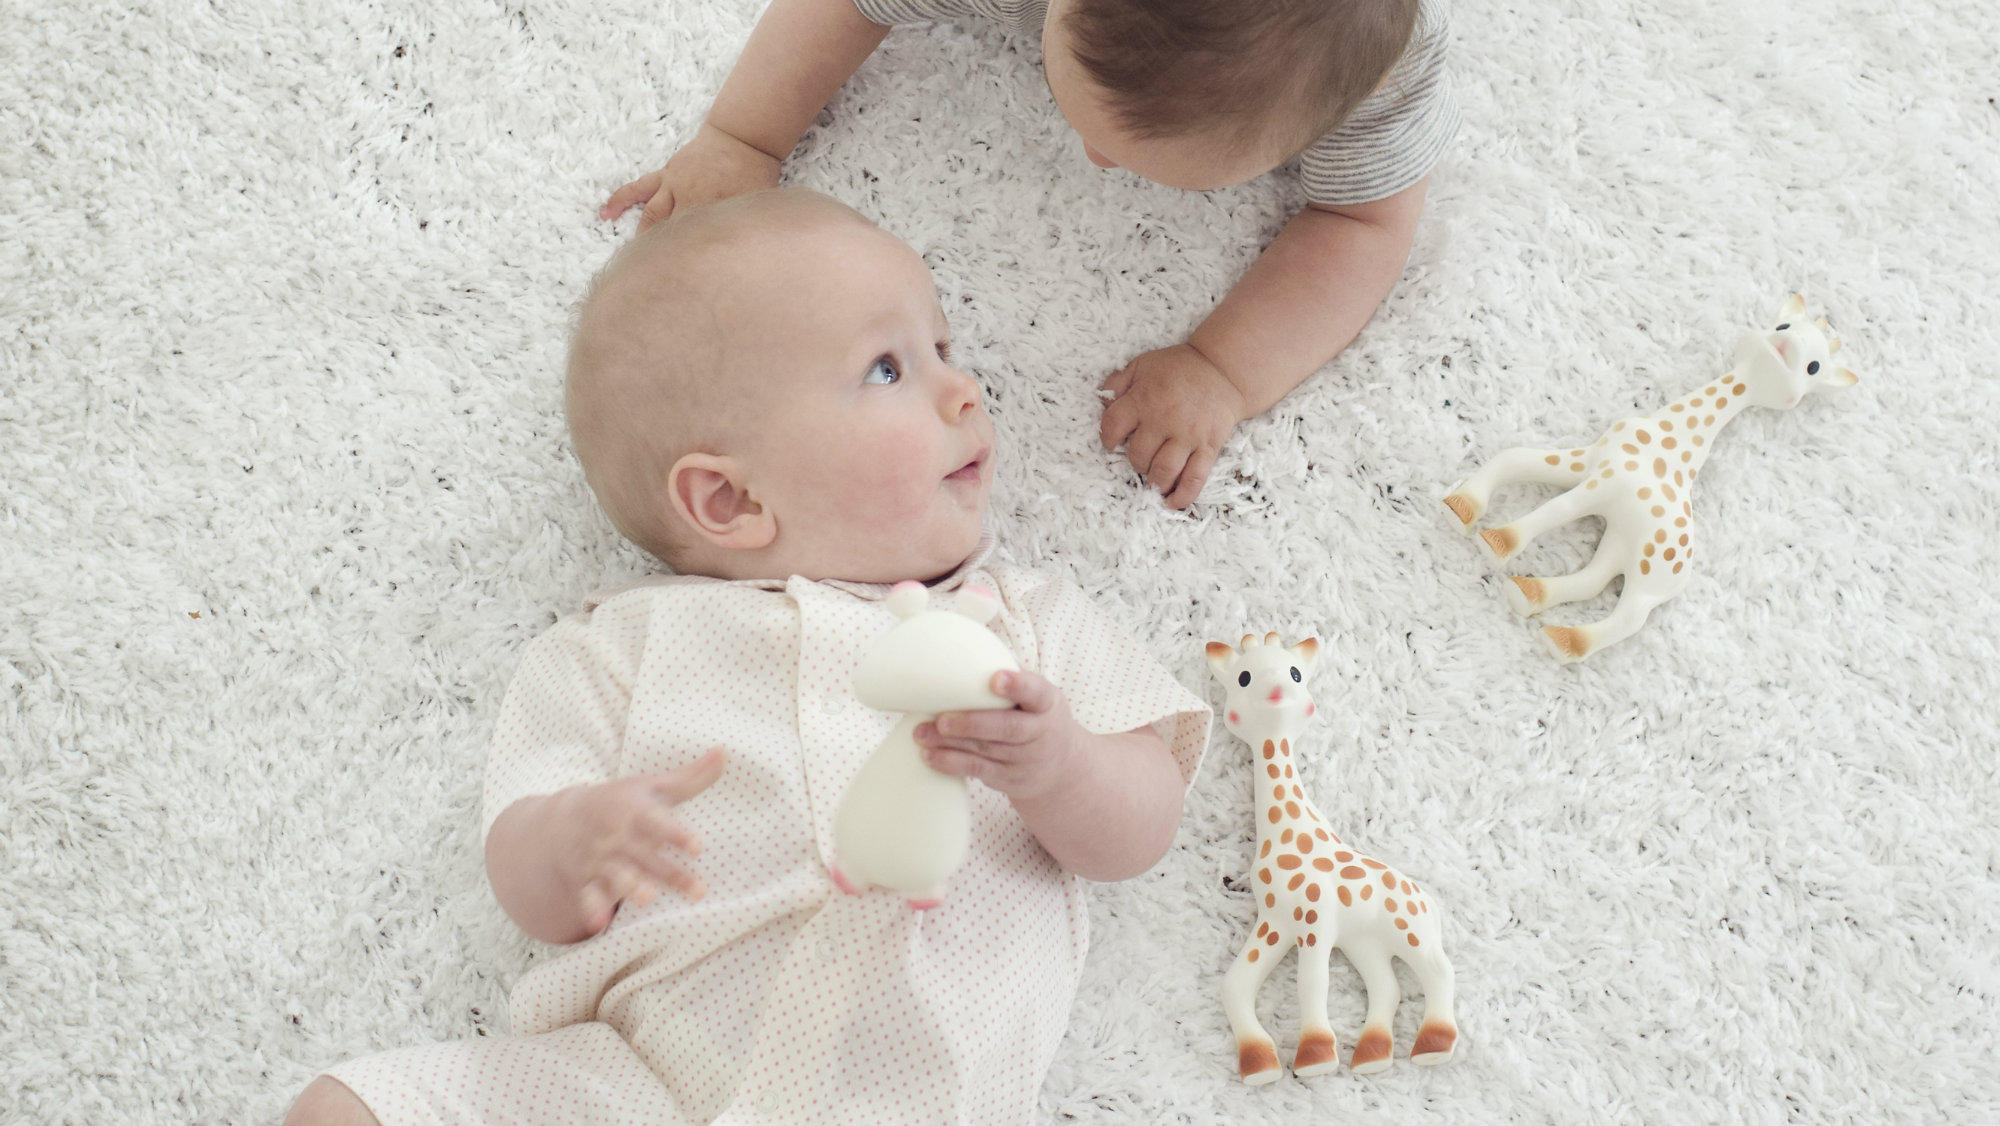 Baby Teethers Babies R Us Sophie The Giraffe Why Every Baby You Know Chews On The